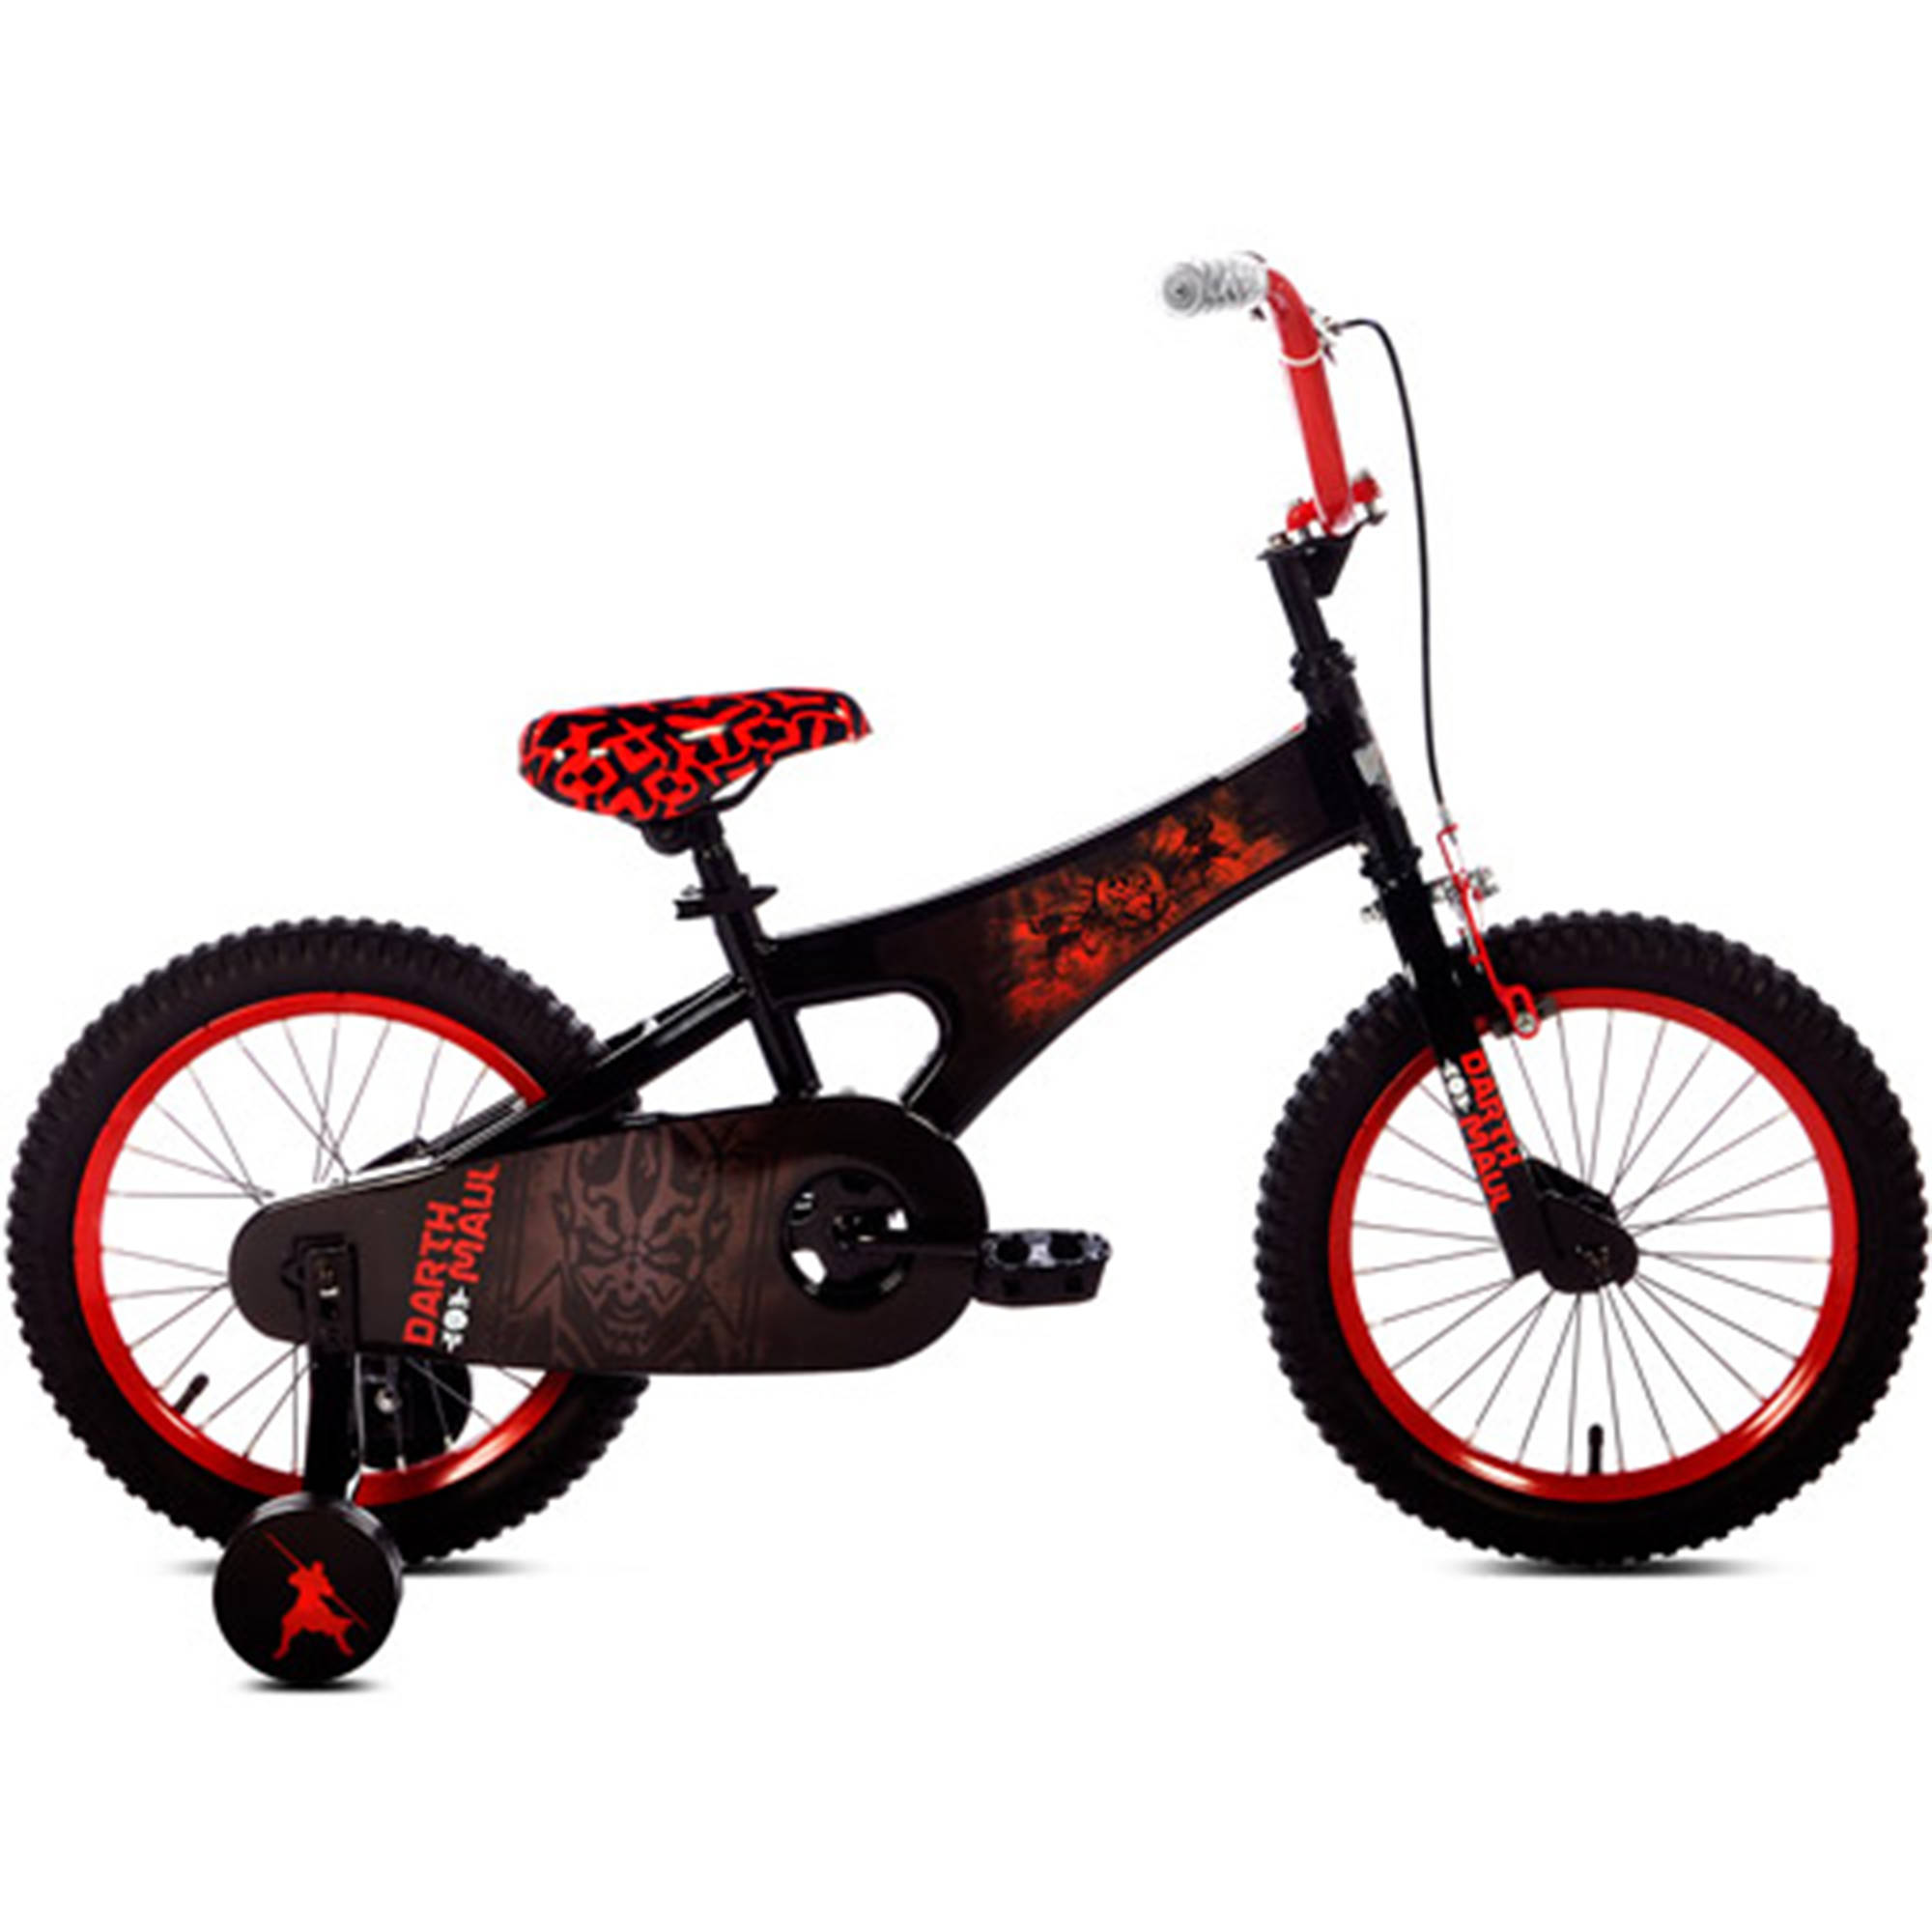 "16"" X-Games FS16 Boys' BMX Bike by Generic"